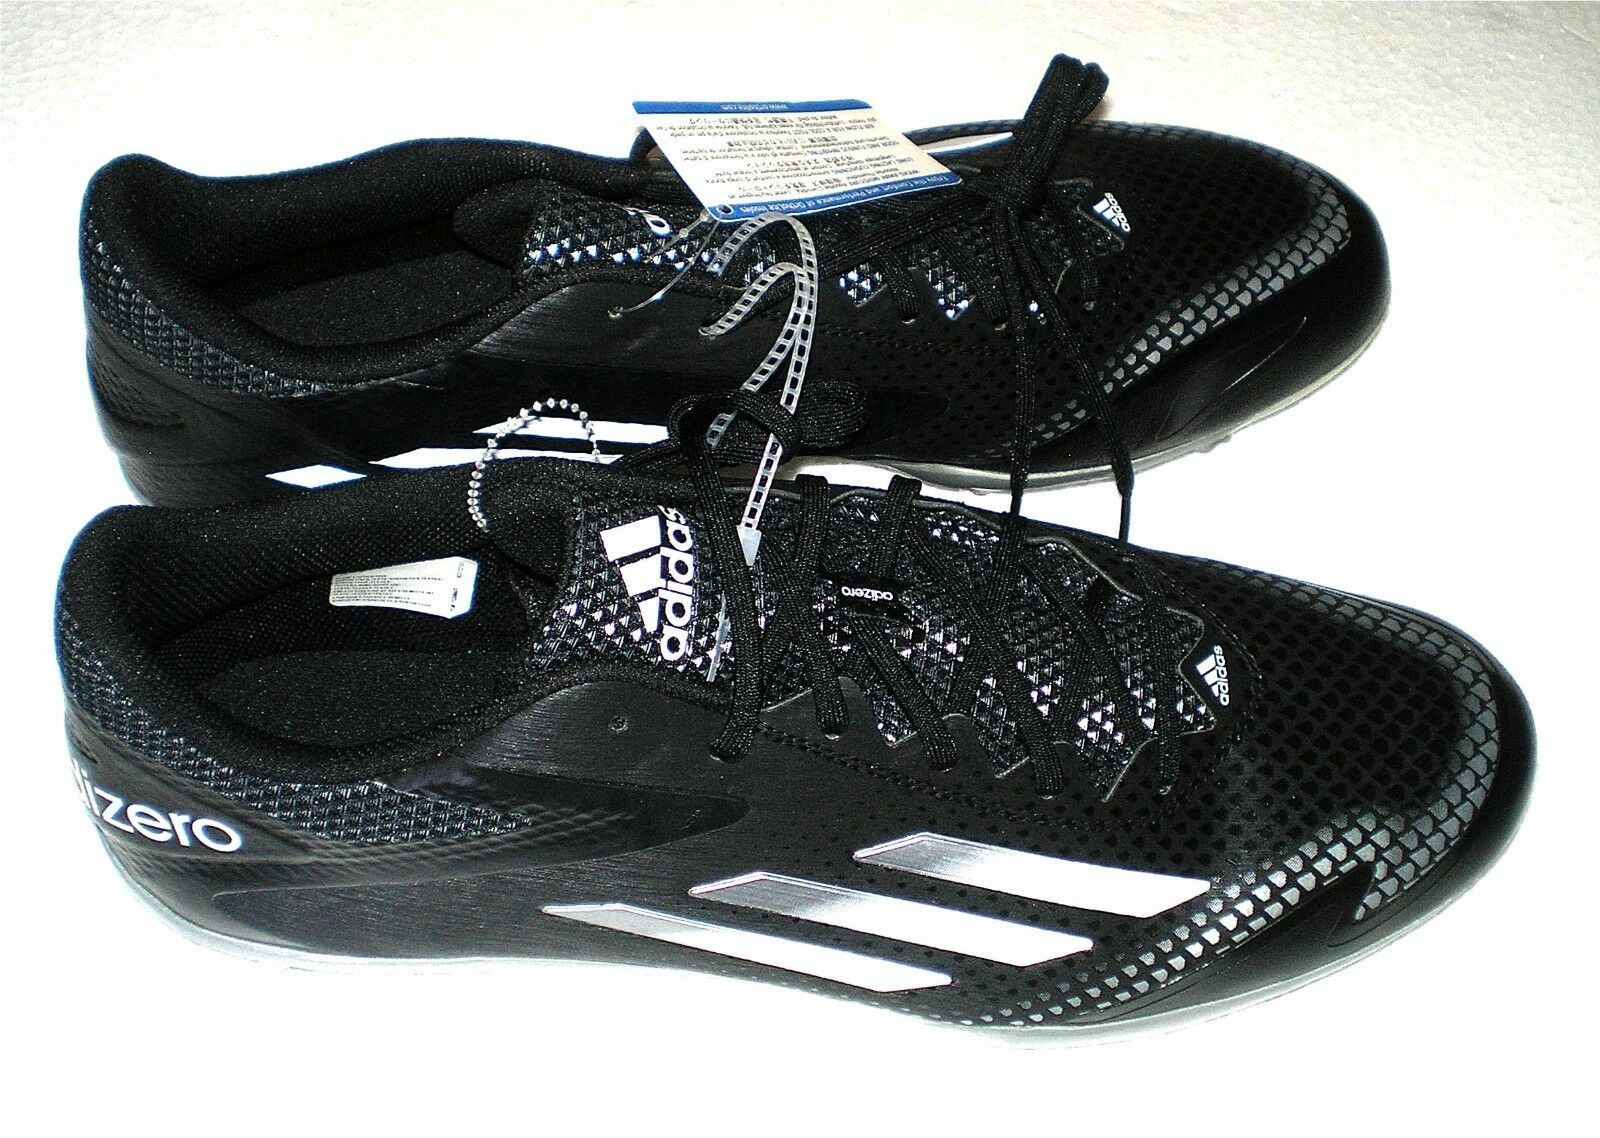 New Adidas Adizero Metal Baseball Cleats Shoes Men's Comfortable The latest discount shoes for men and women